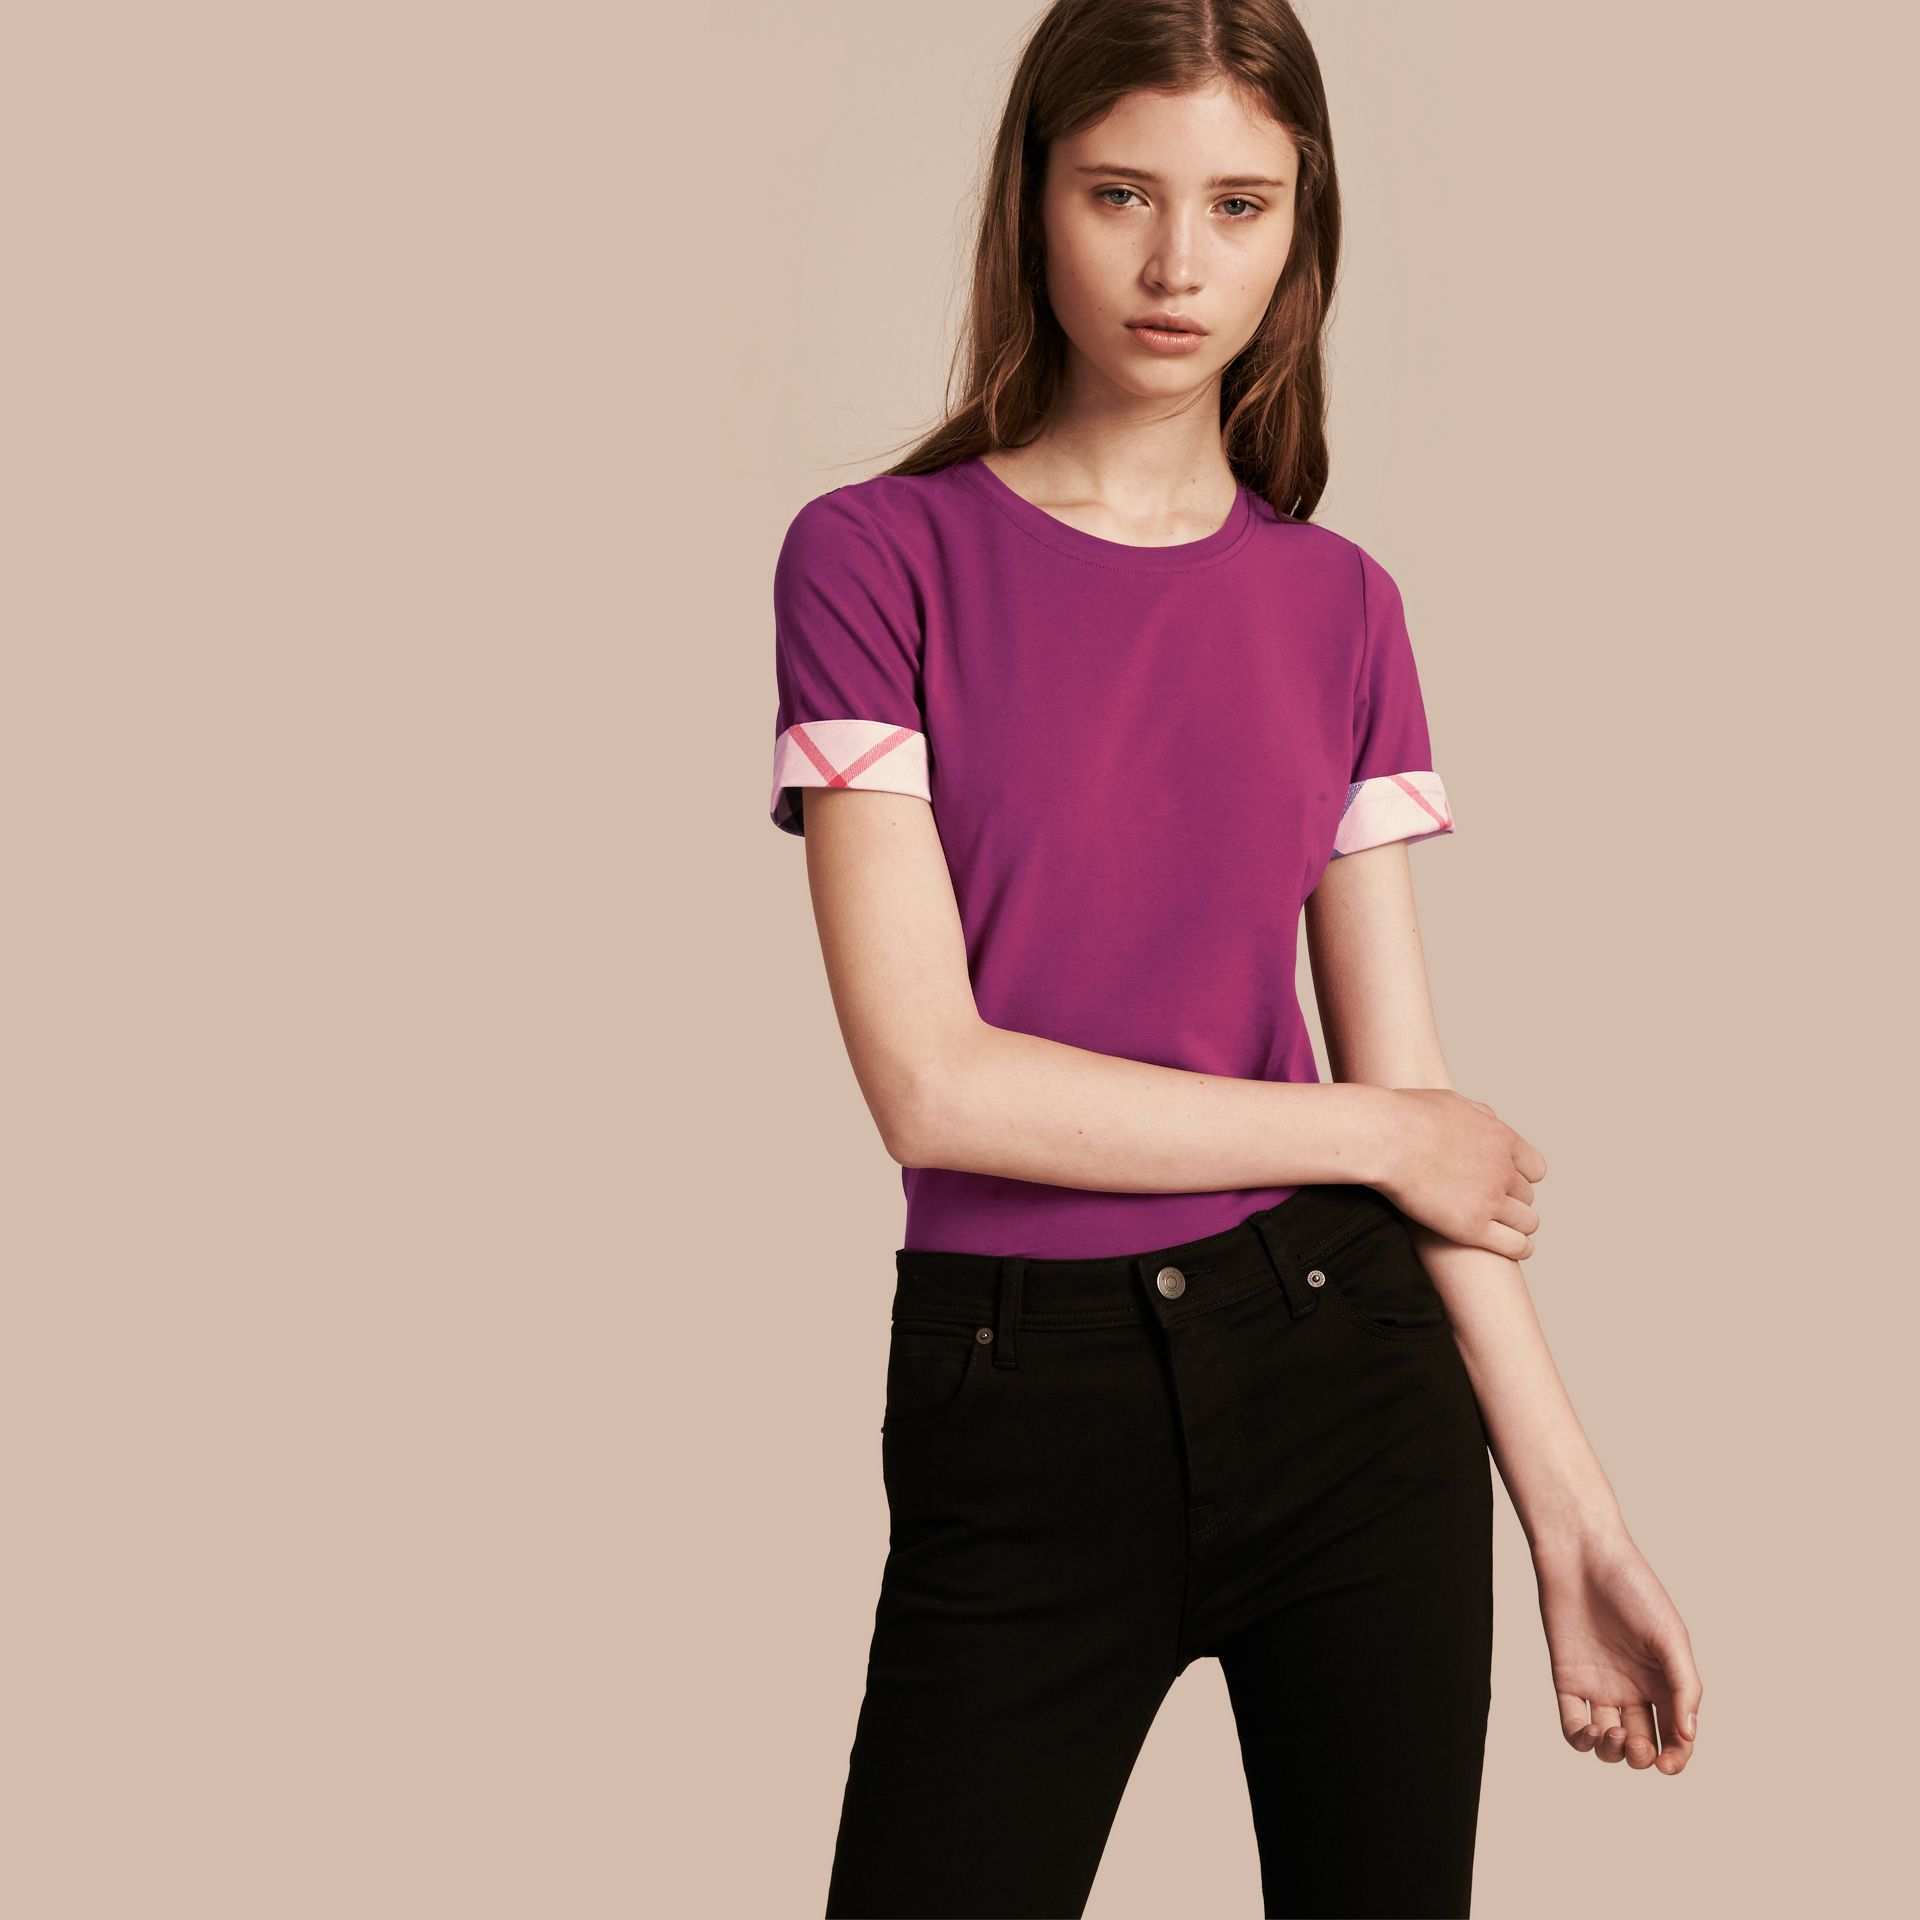 Check Cuff Stretch Cotton T-Shirt in Magenta Pink - Women | Burberry - gallery image 1